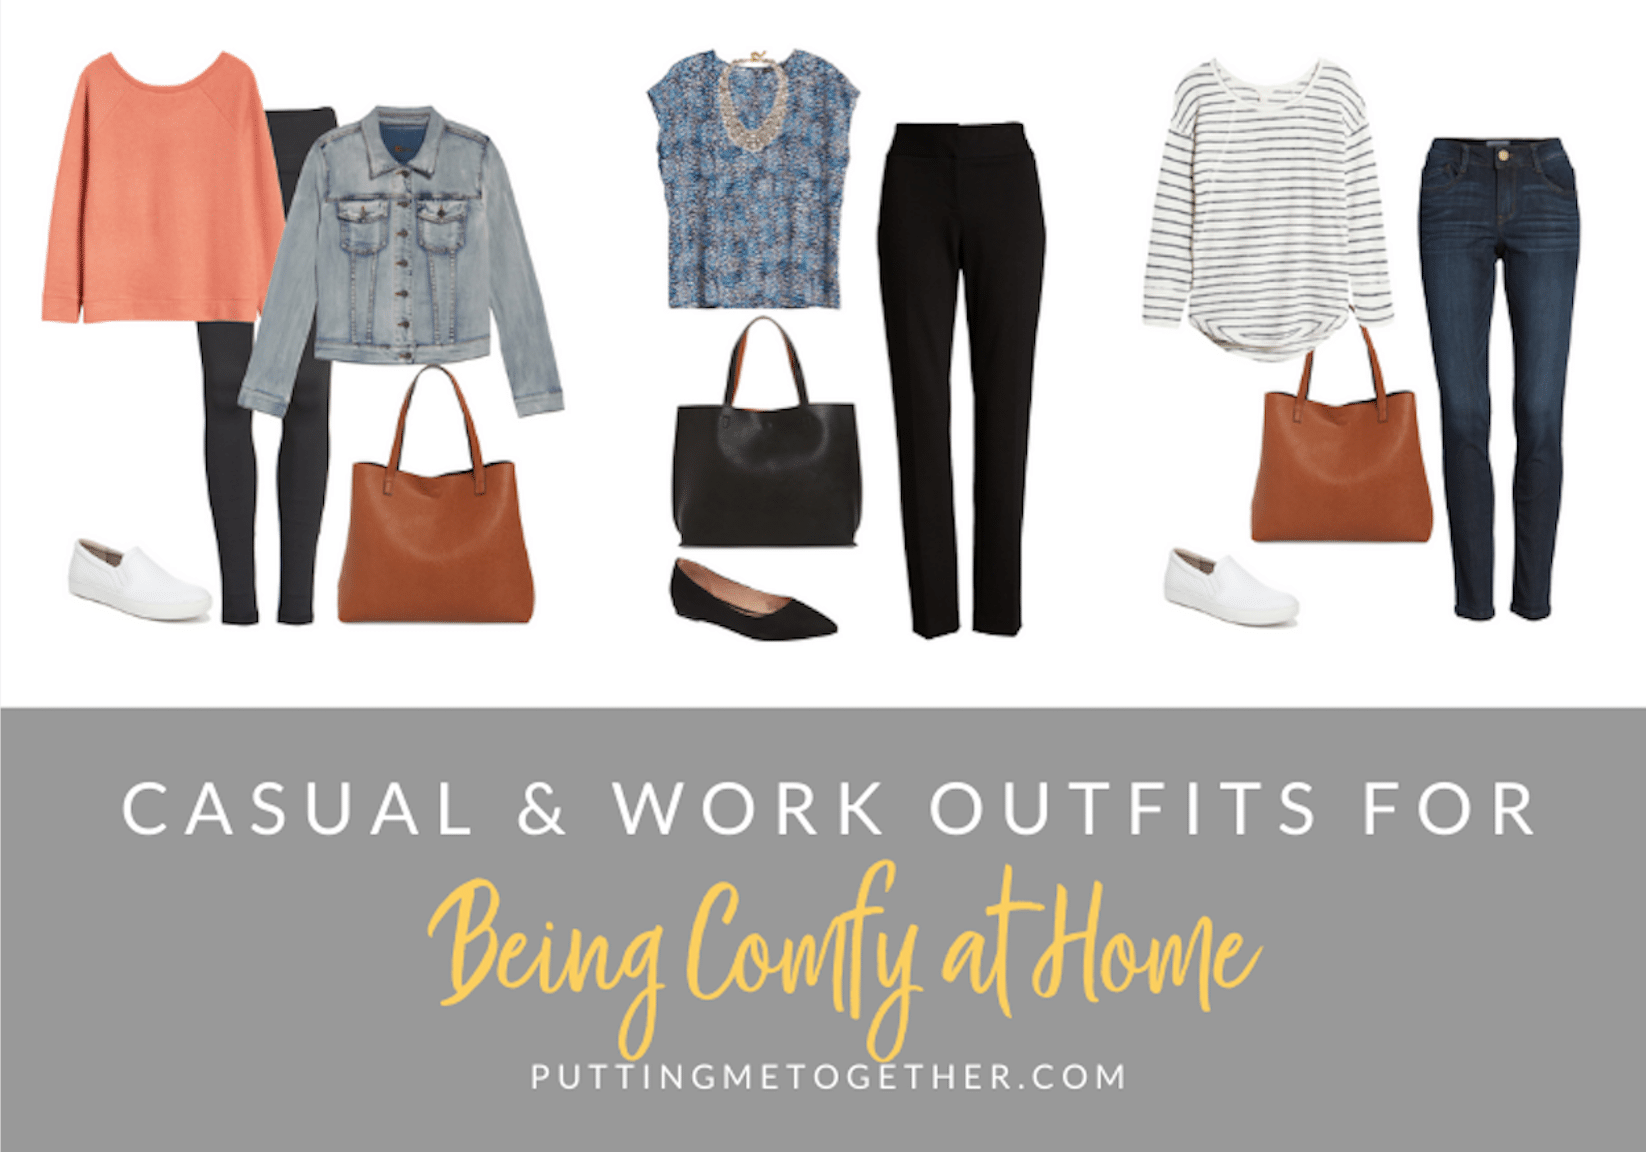 16 Outfit Formulas Casual and Work Outfits for Being Comfy at Home